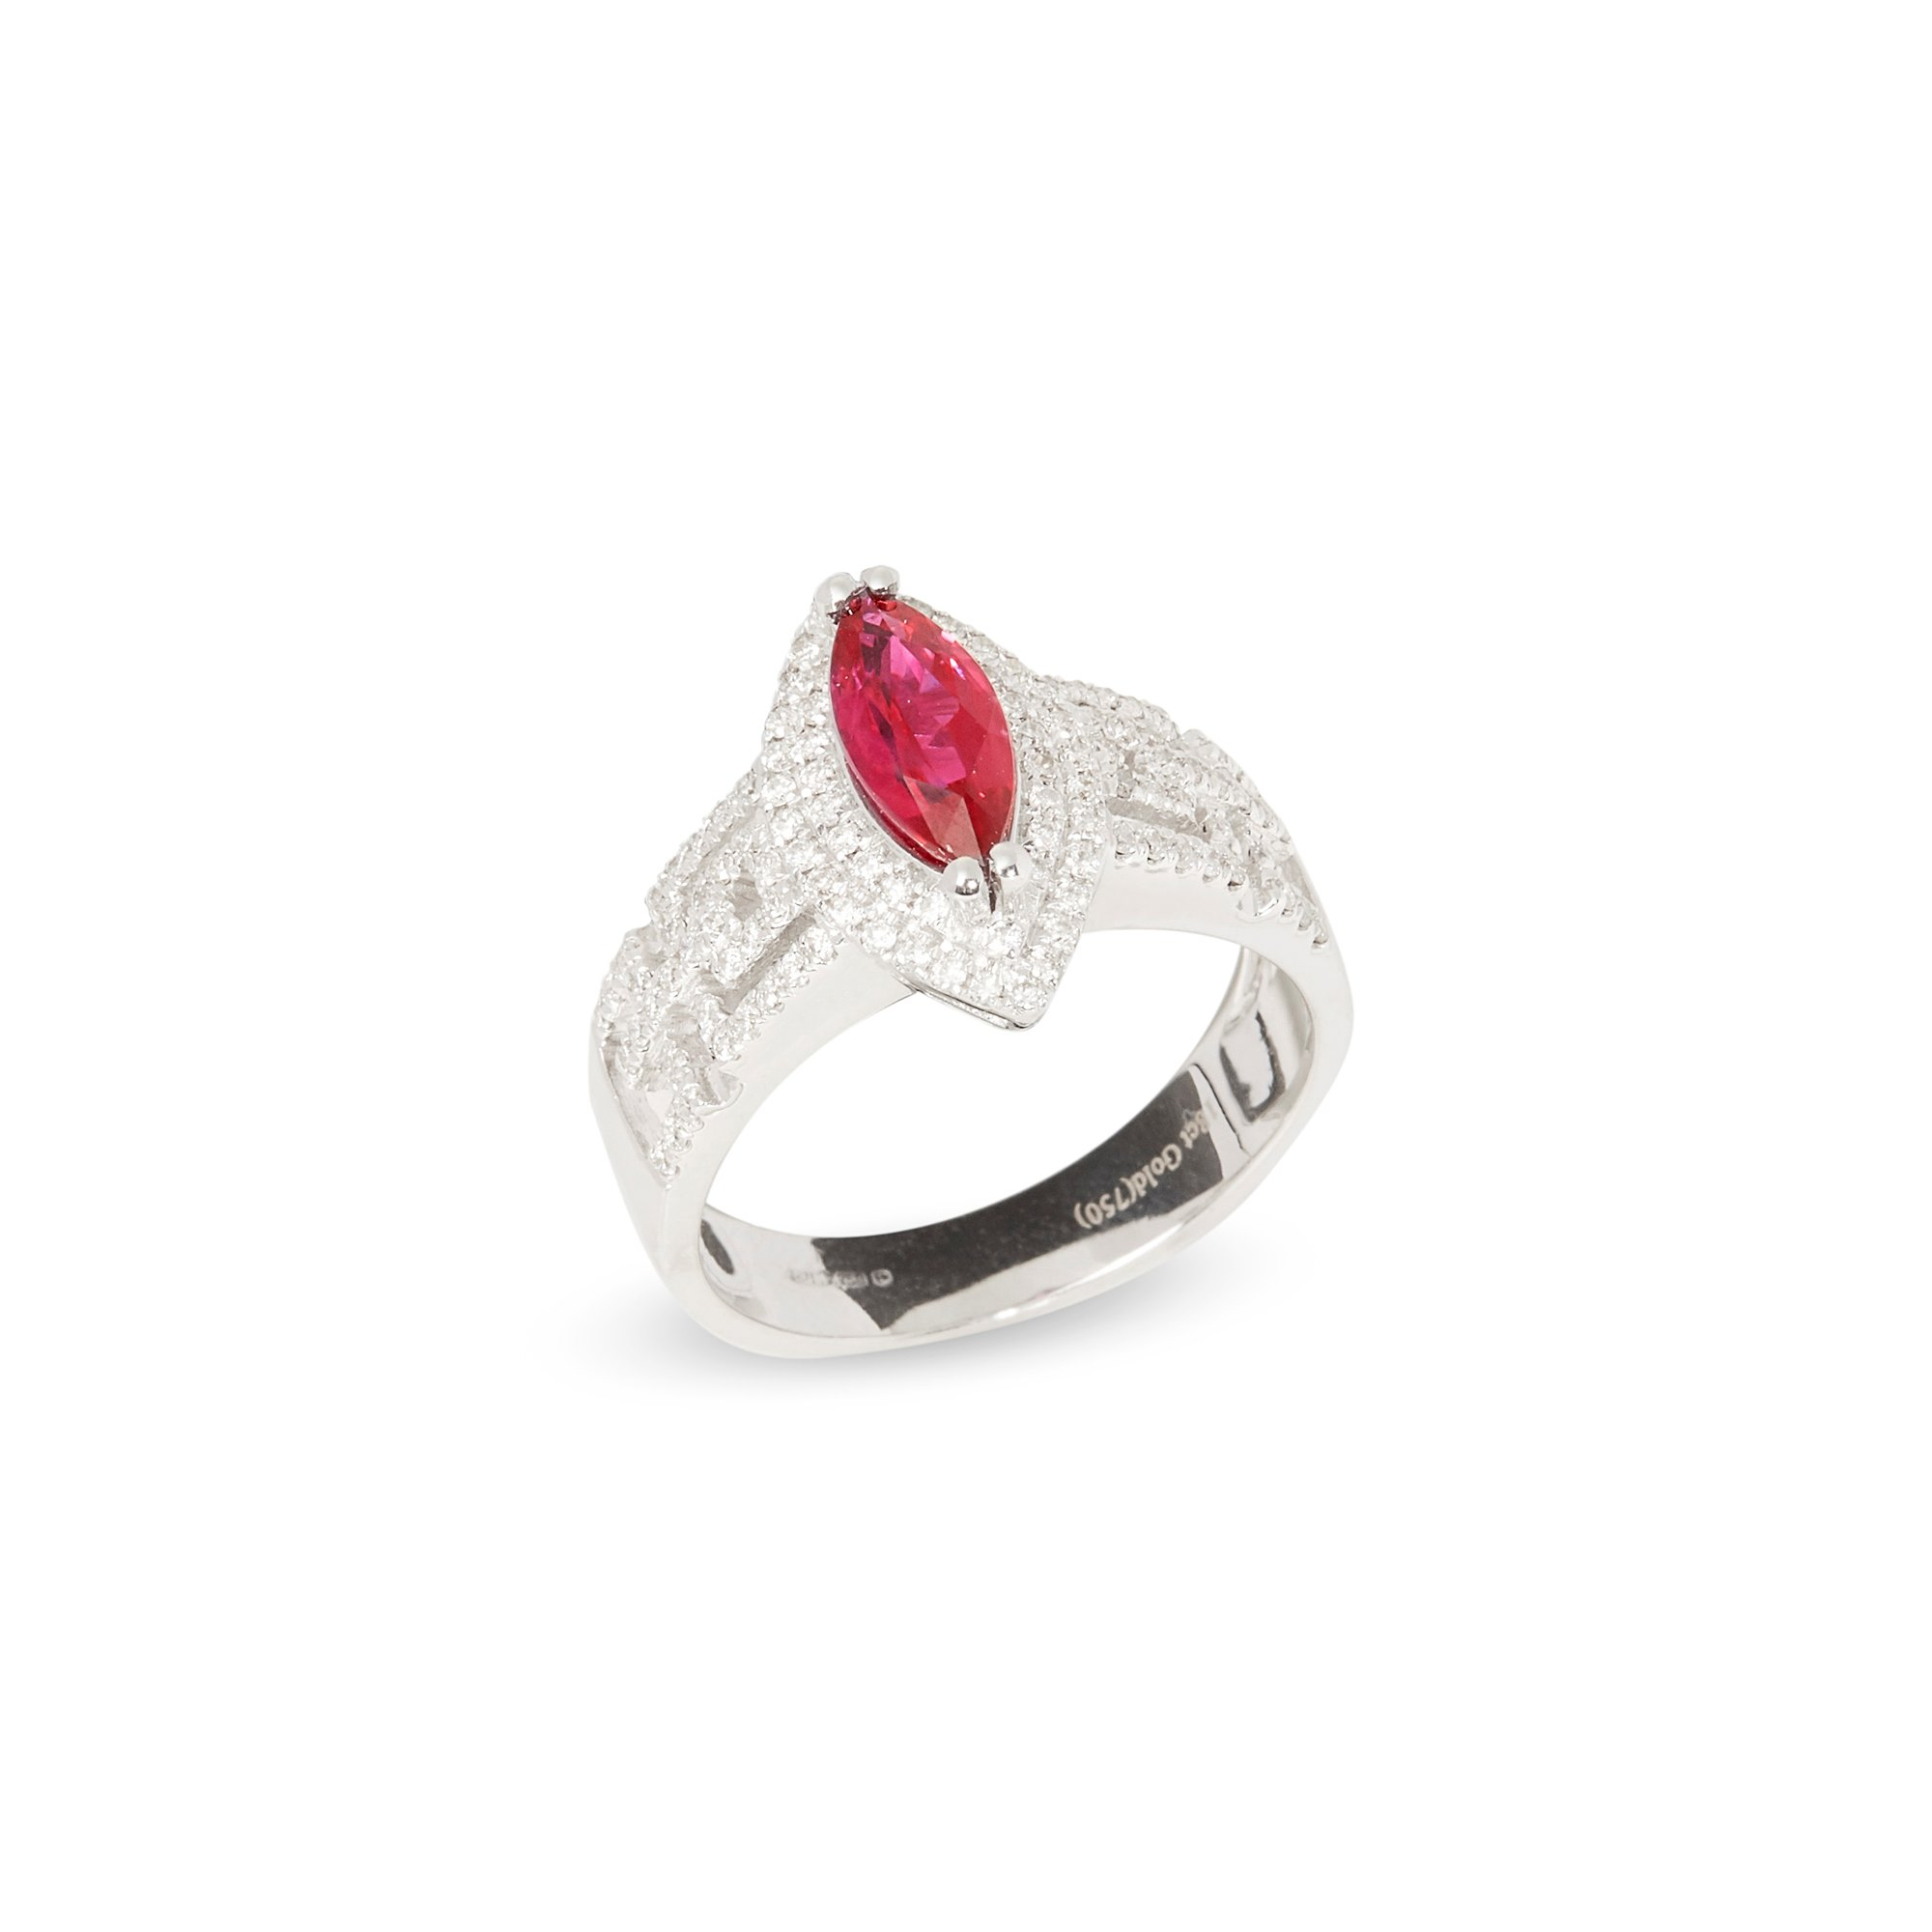 David Jerome Certified 1.13ct Untreated Burmese Marquise Cut Ruby and Diamond 18ct Gold Ring